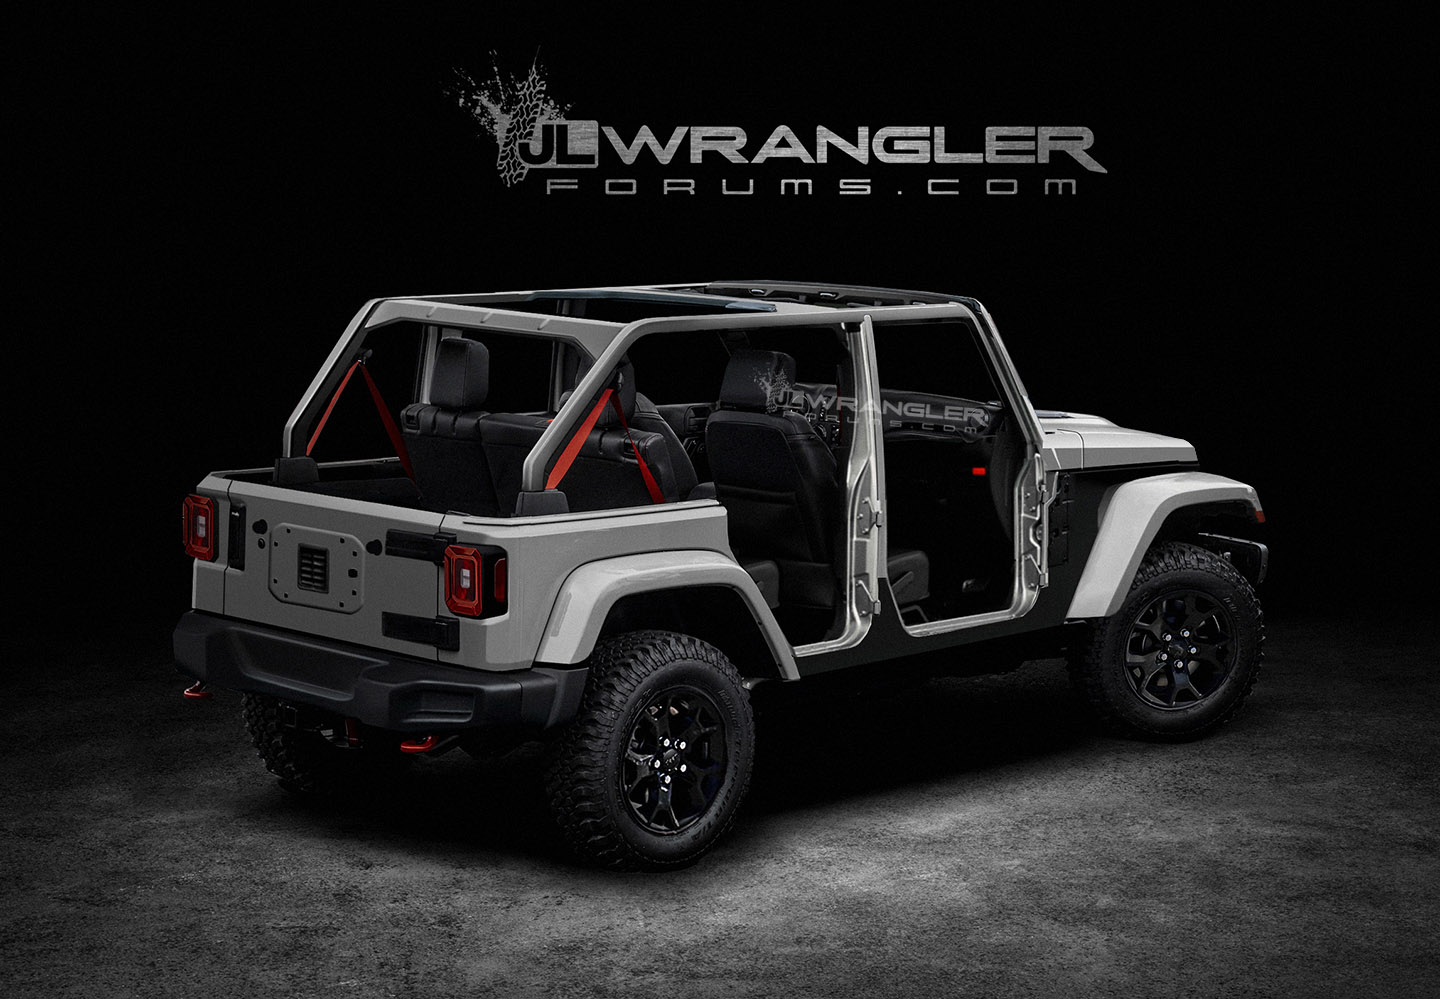 LEAKED! First Images Of The 2018 JL Wrangler ...